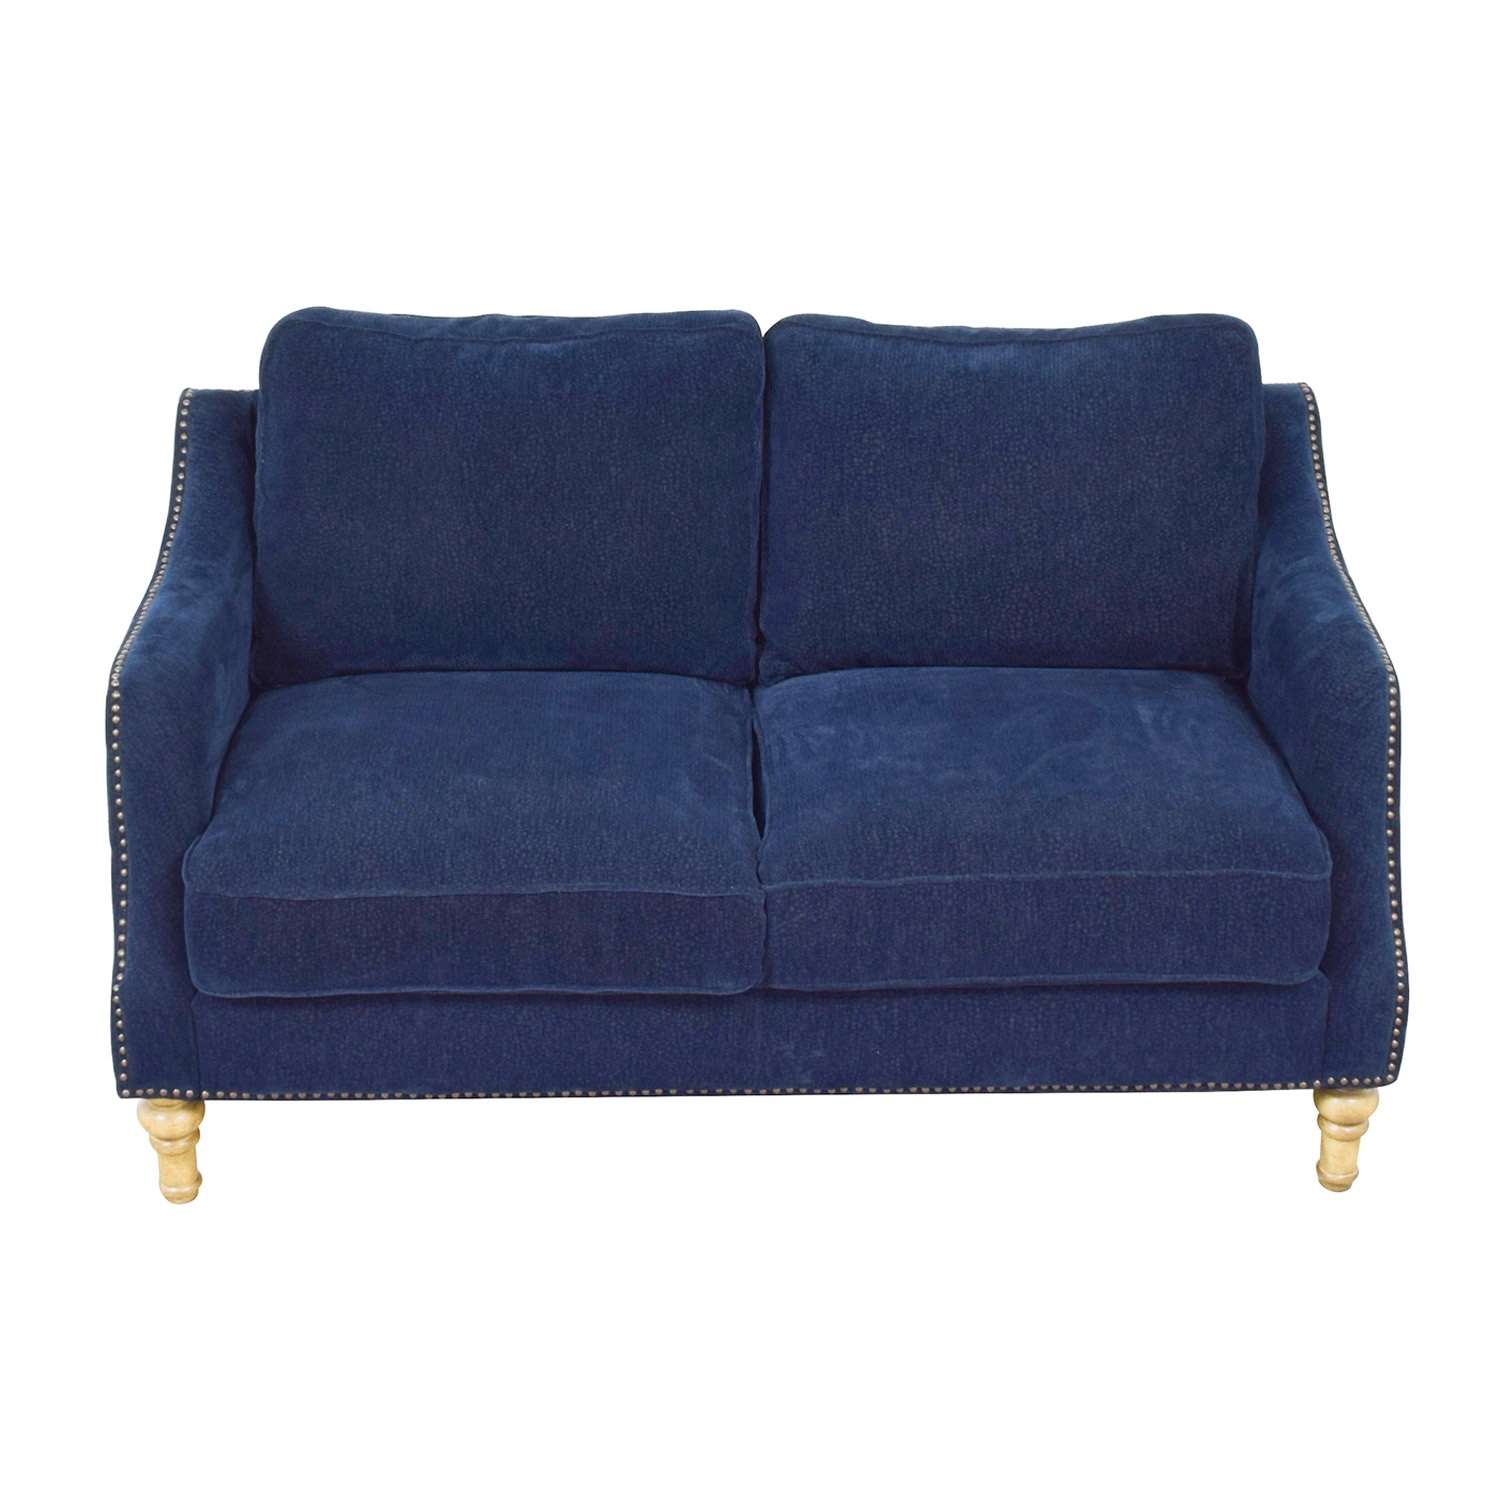 Mayfair Navy Nailhead Two-Cushion Loveseat